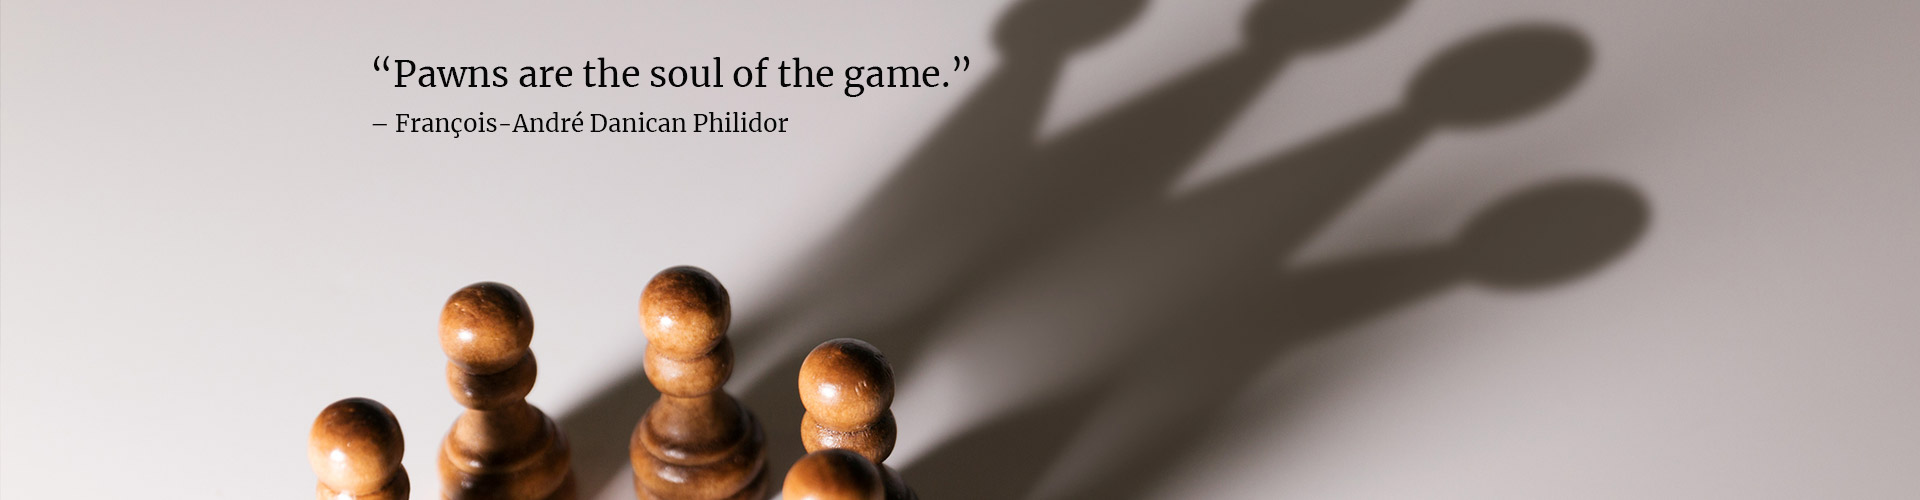 pawns are the soul of the game. François-André Danican Philidor